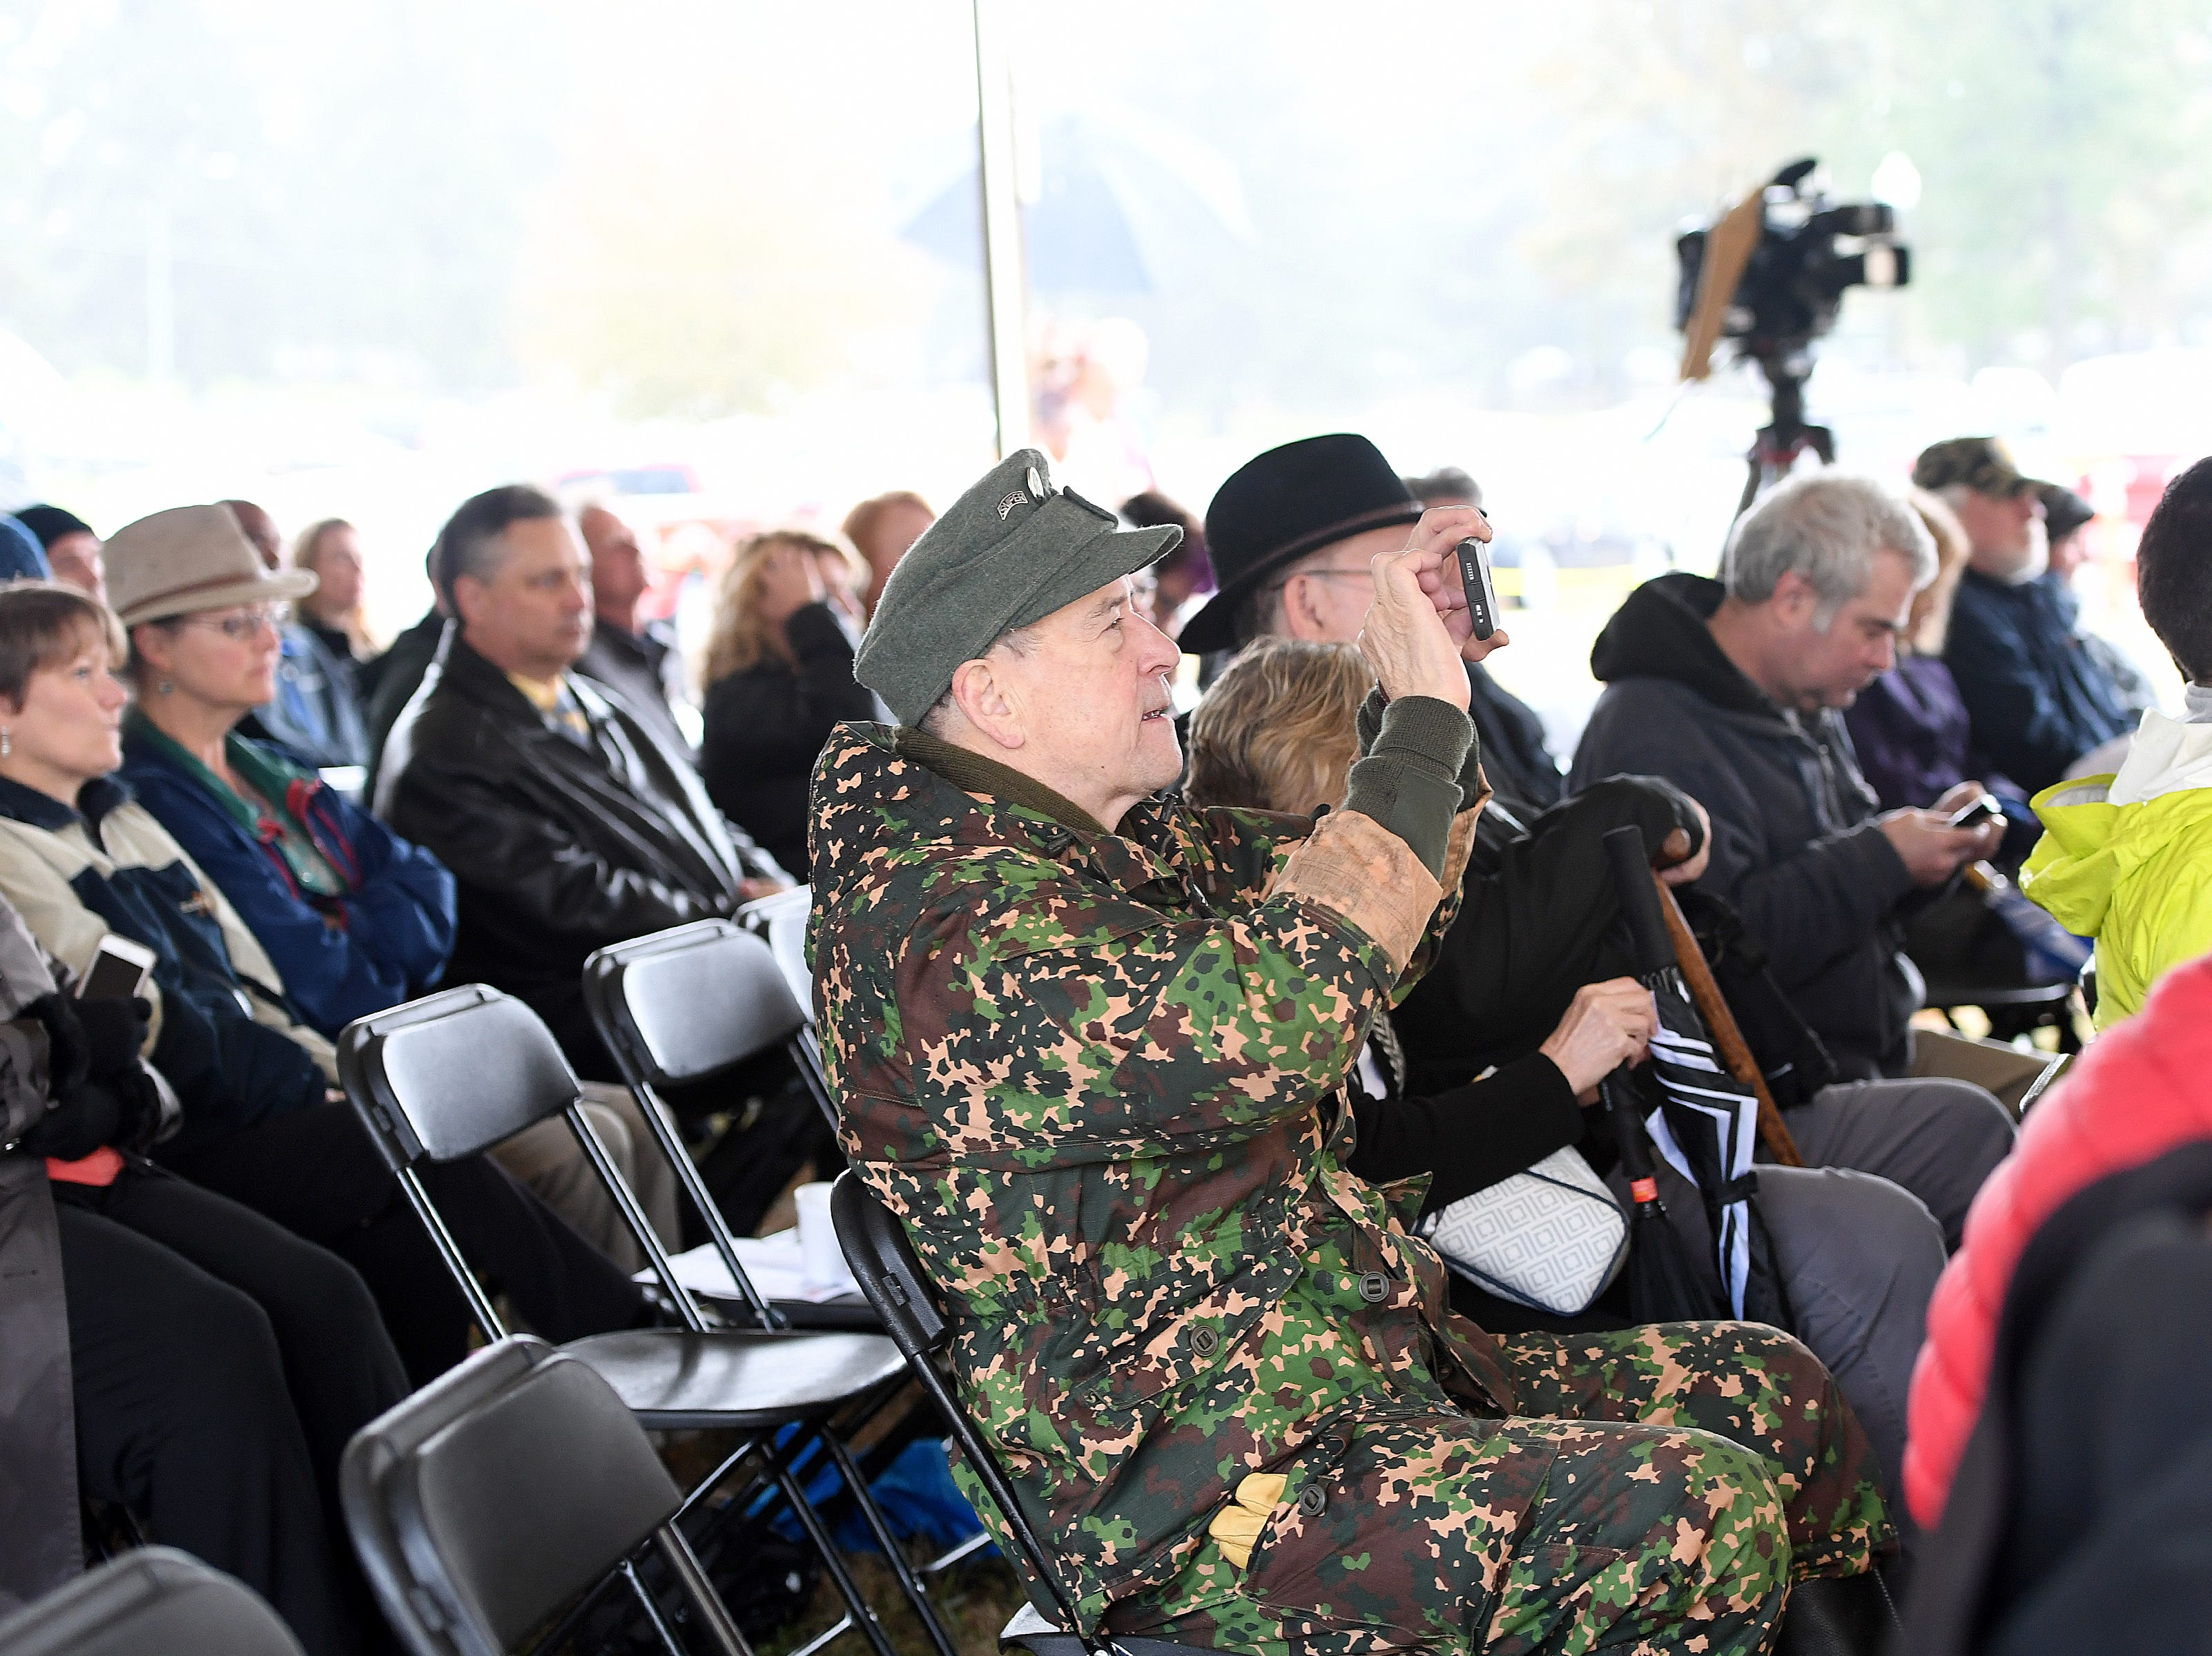 The crowd listens to remarks during a ceremony celebrating the opening of the Veterans Hope and Recovery Center on the campus of the Charles George VA Medical Center on Oct. 26, 2018.